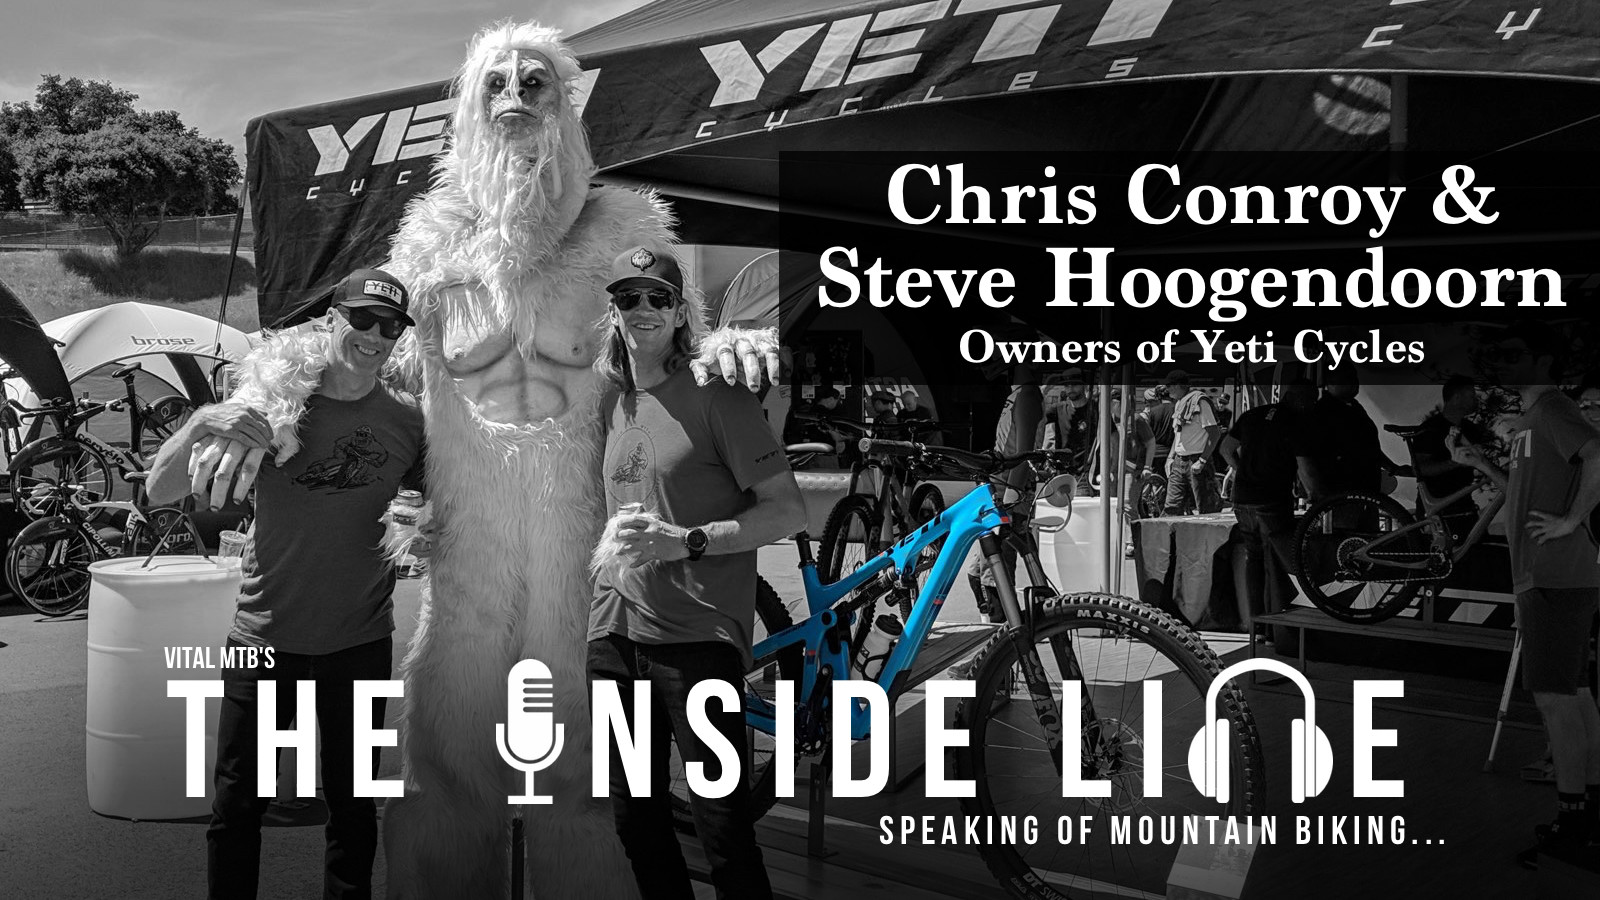 Yeti Cycles Owners, Chris Conroy and Steve Hoogendoorn - The Inside Line